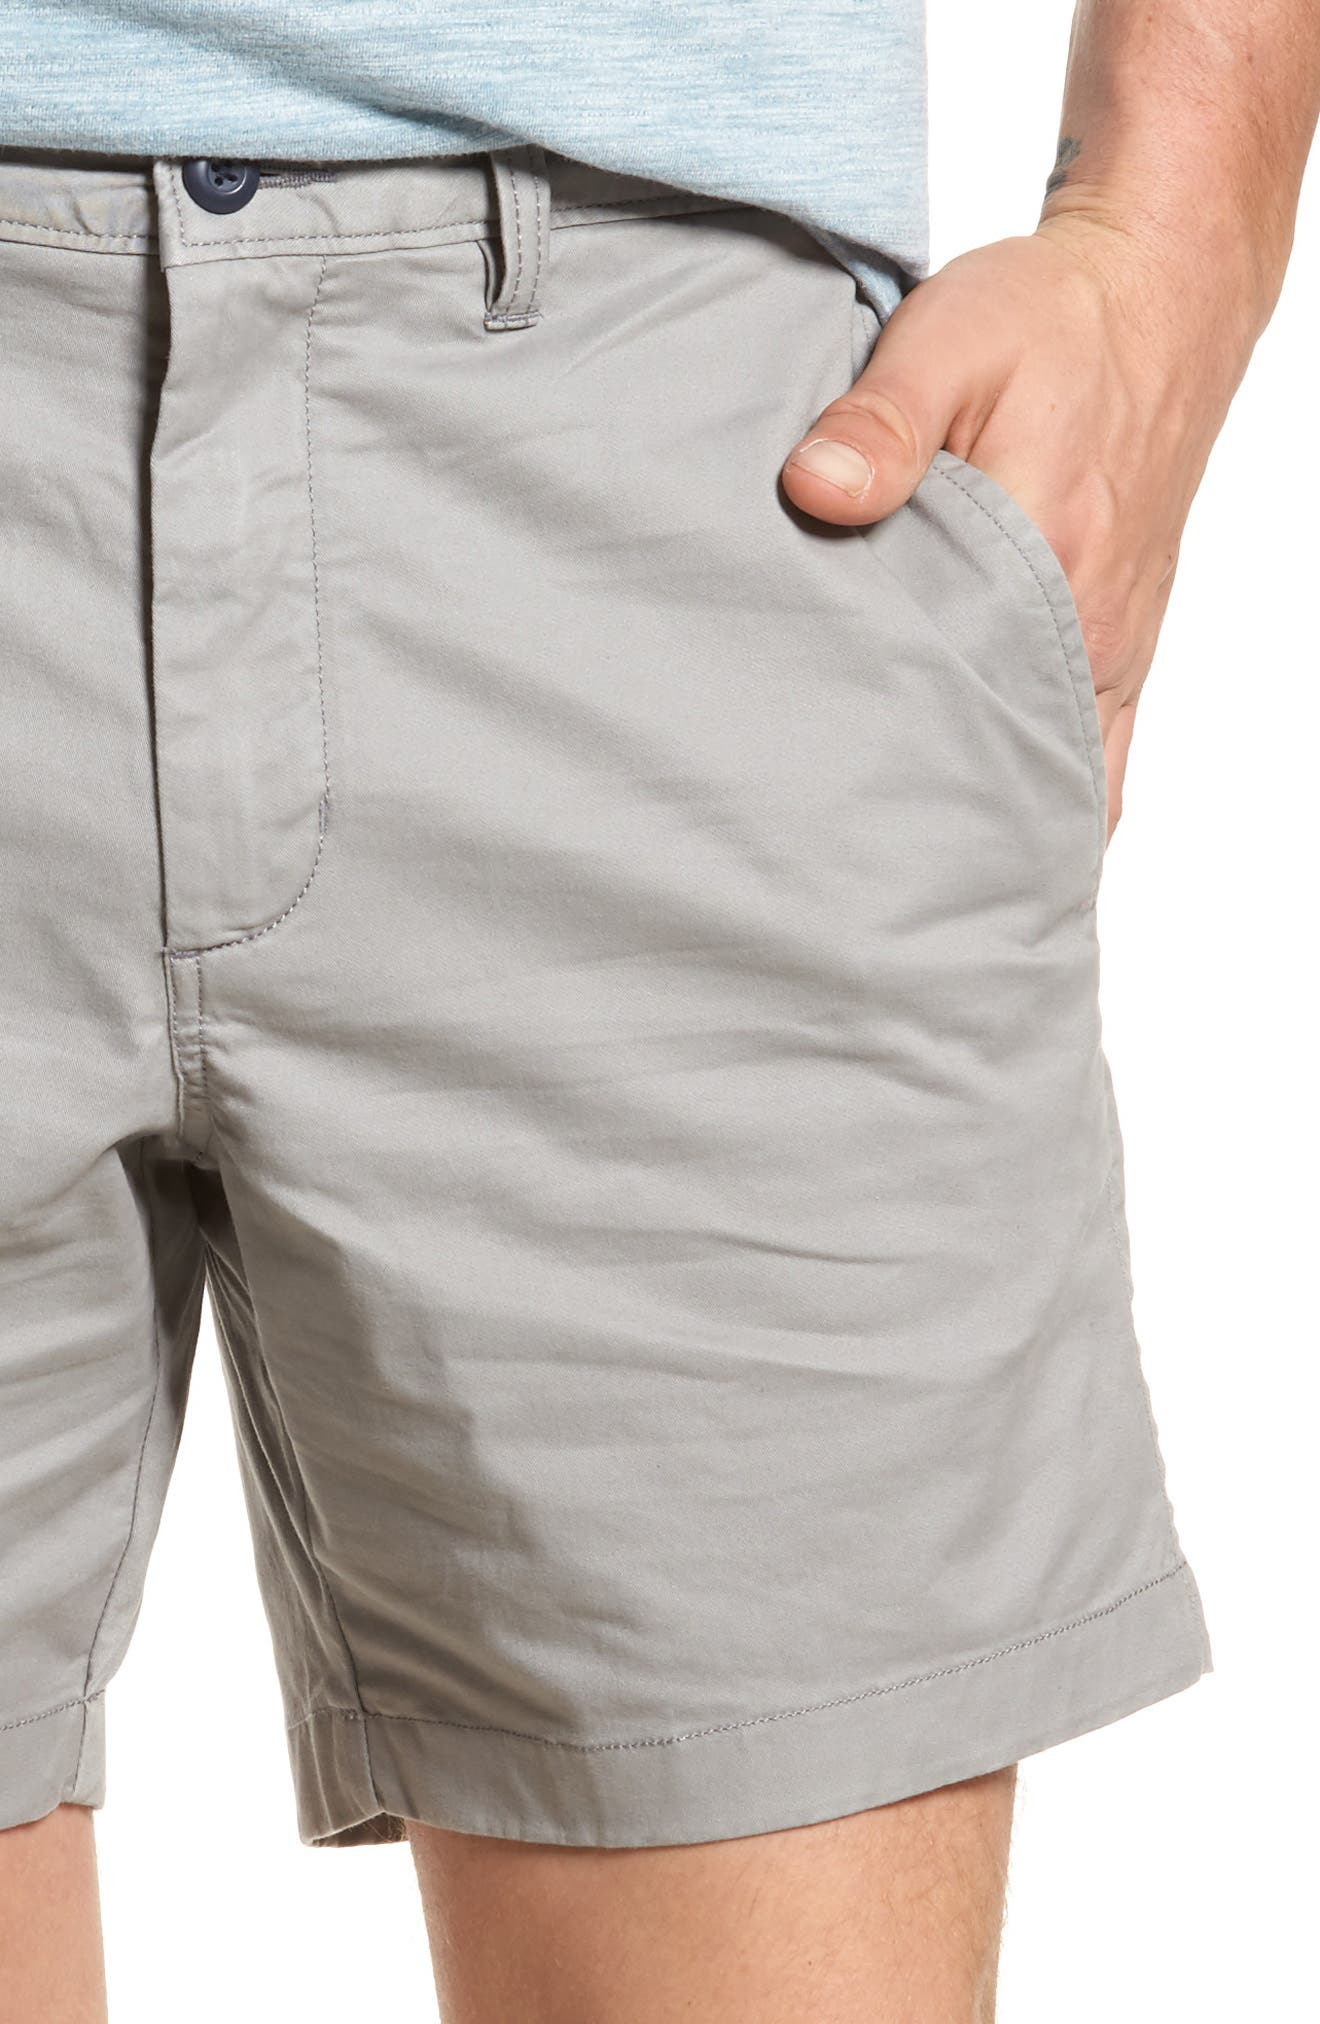 Ballard Slim Fit Stretch Chino 7-Inch Shorts,                             Alternate thumbnail 4, color,                             030